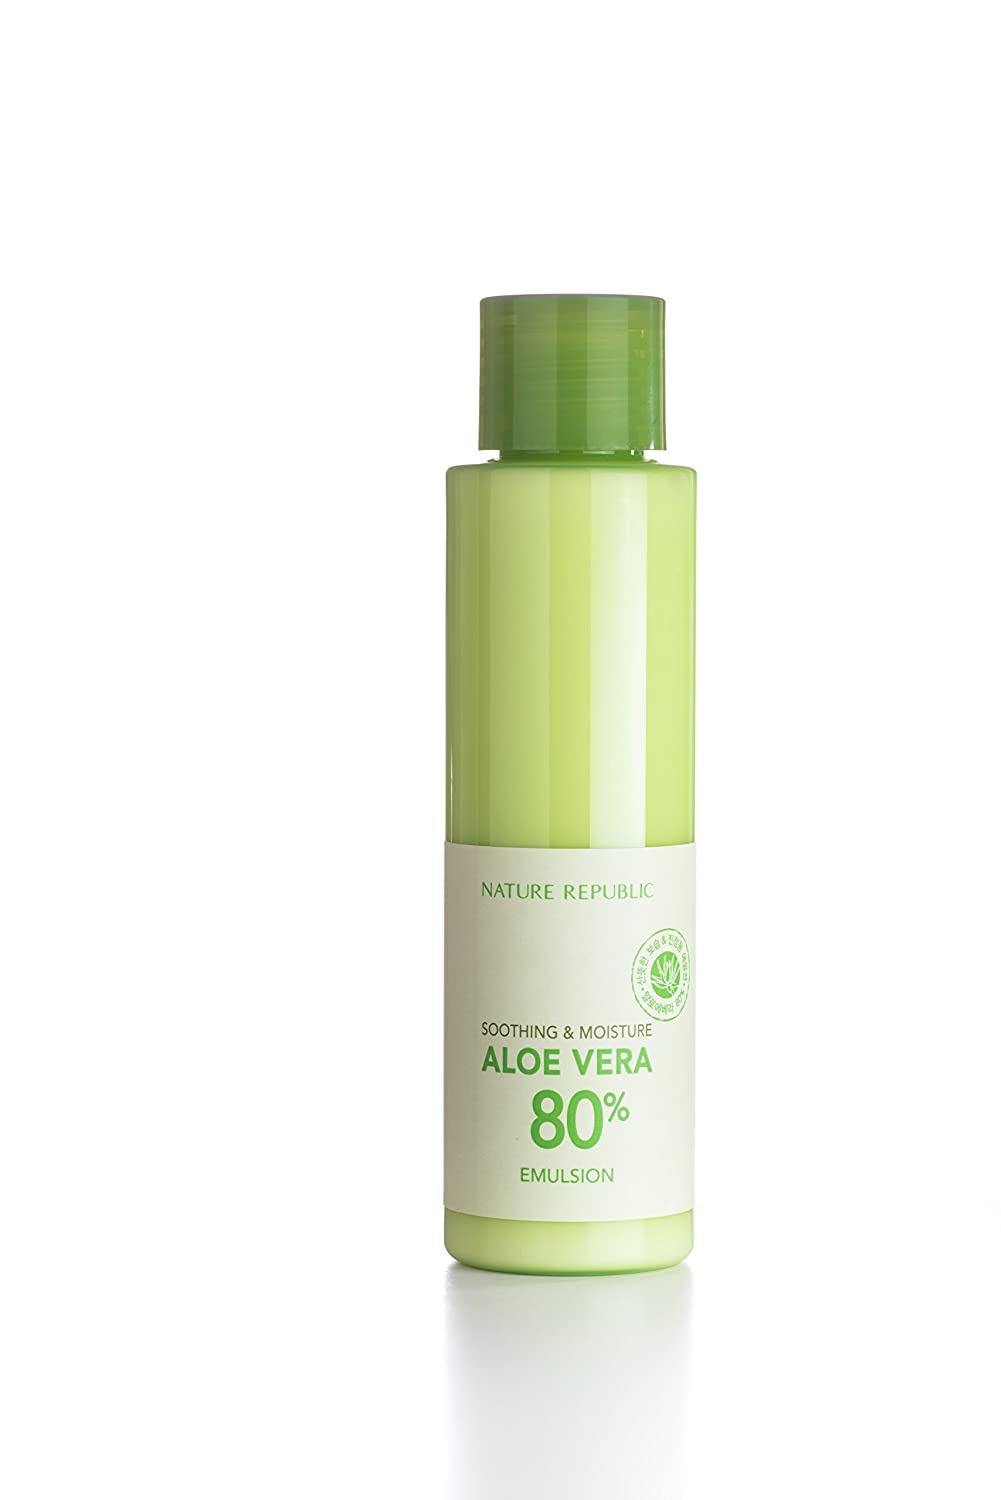 Nature Republic Soothing & Moisture Aloe Vera 80% Emulsion, 160 Gram